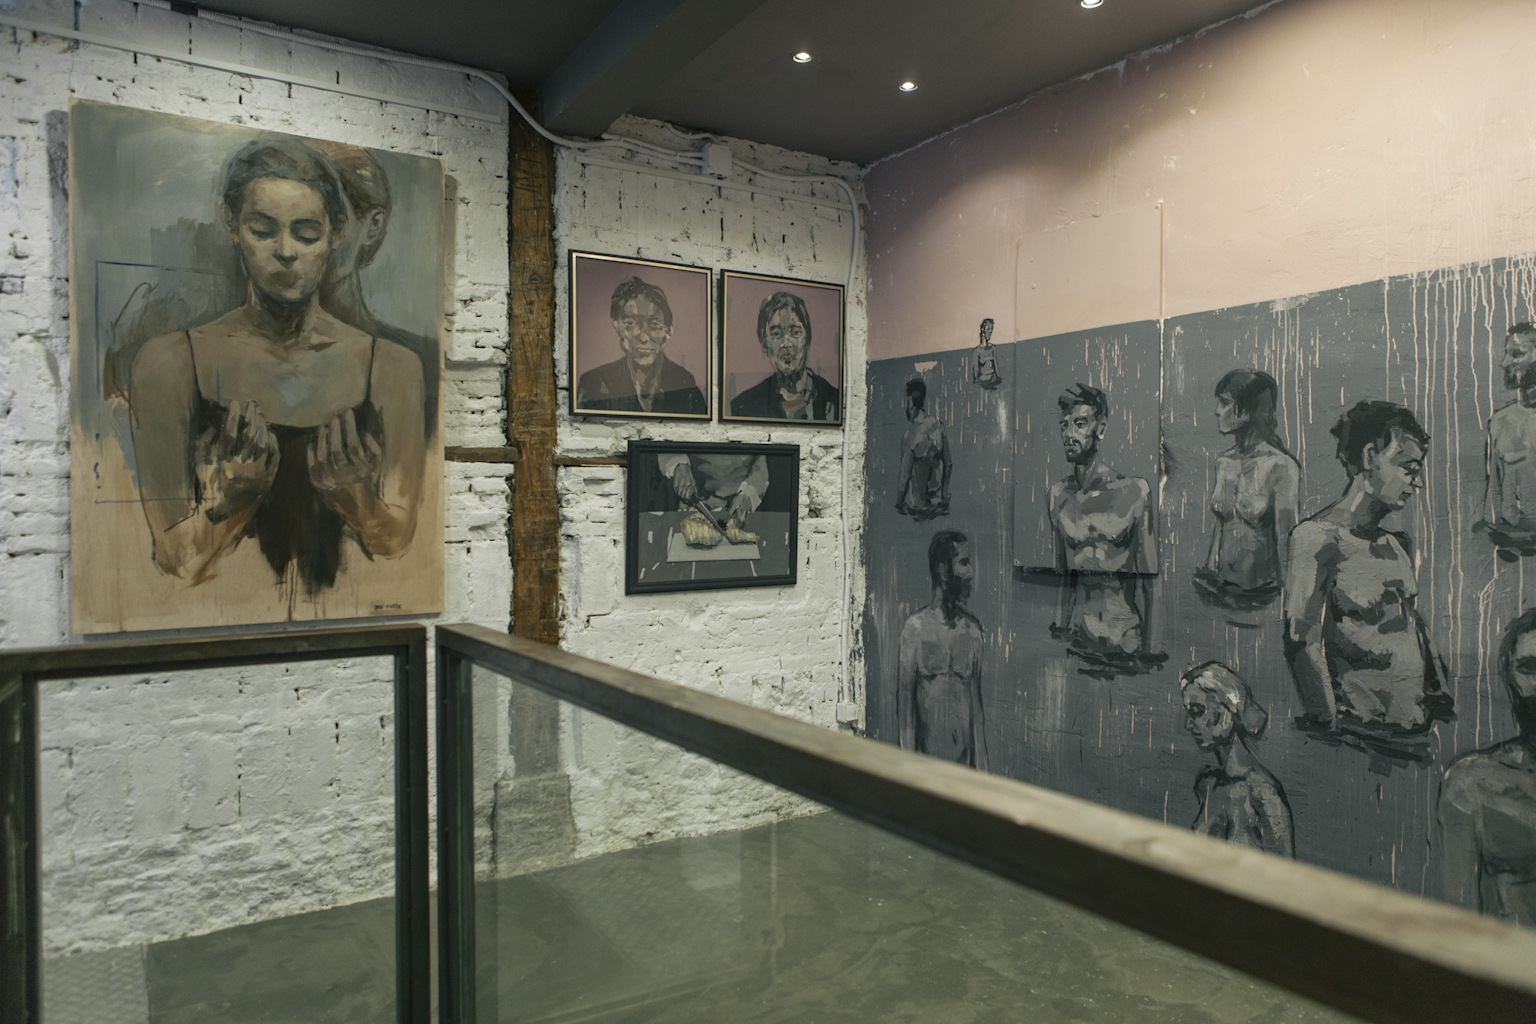 Espositivo_local_galeria_arte0006